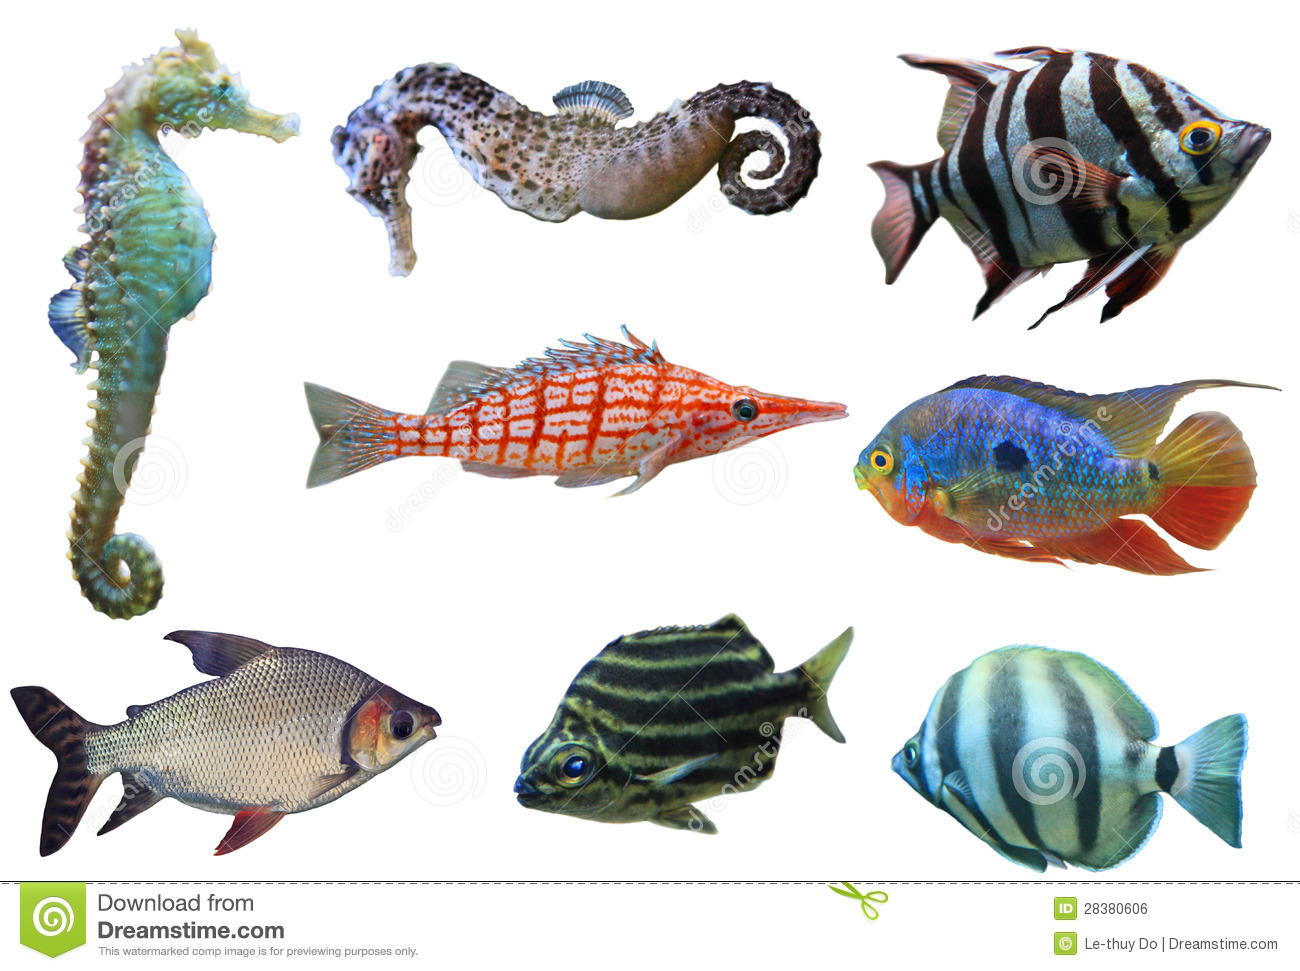 Aquarium fish stock photo image of cornutus acanthurus for Photos of fish